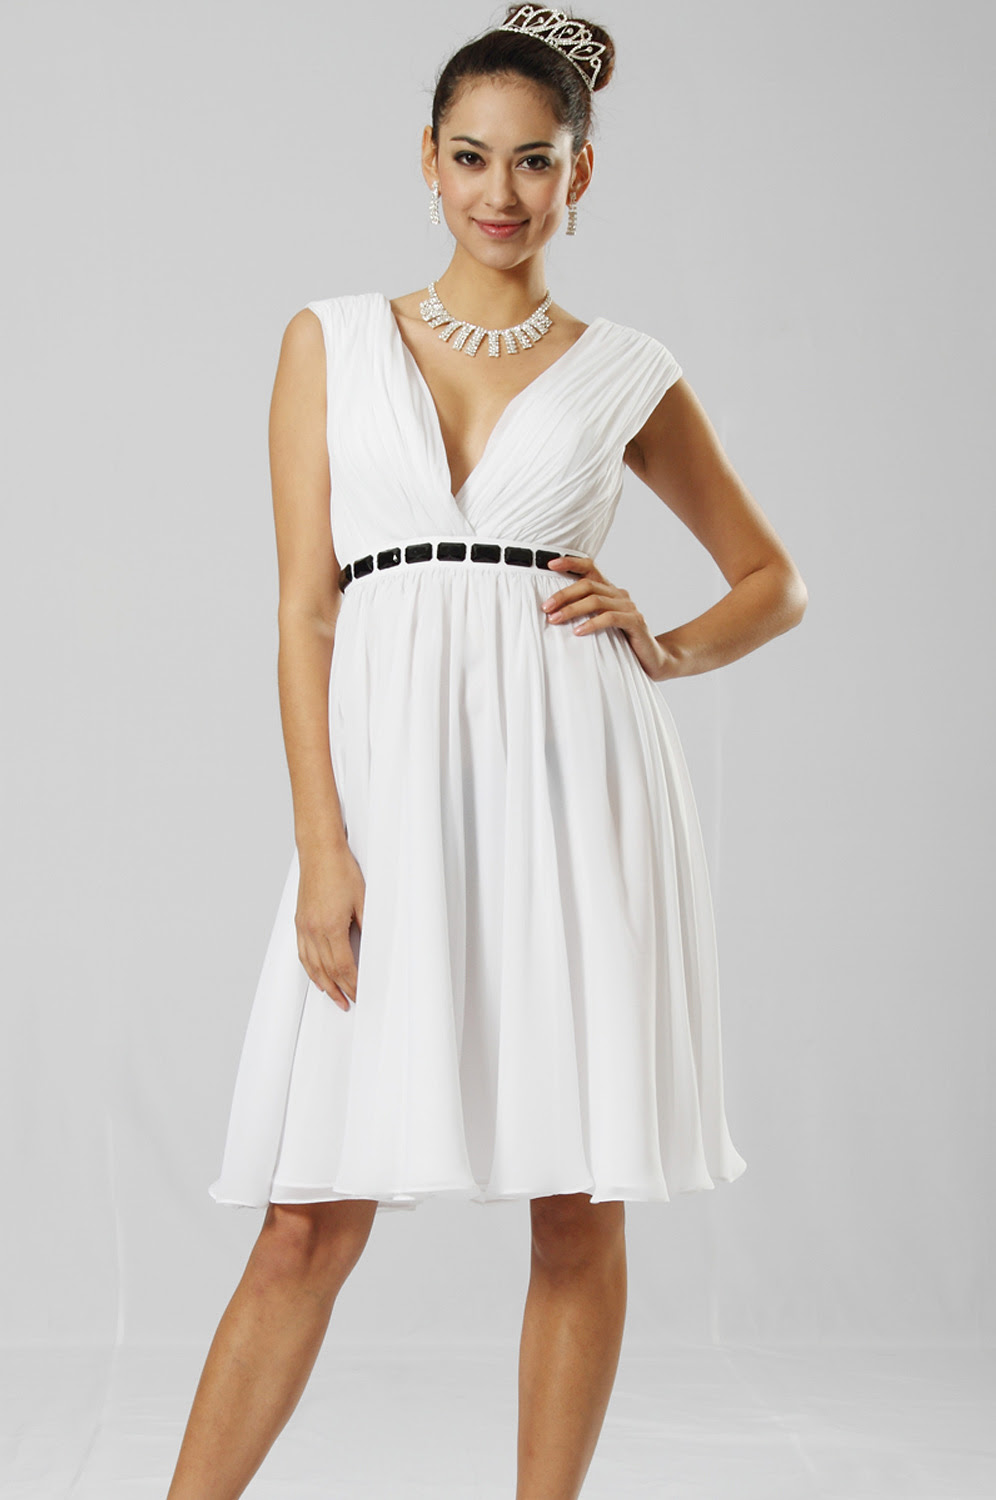 eDressit Adoralble White Cocktail Dress